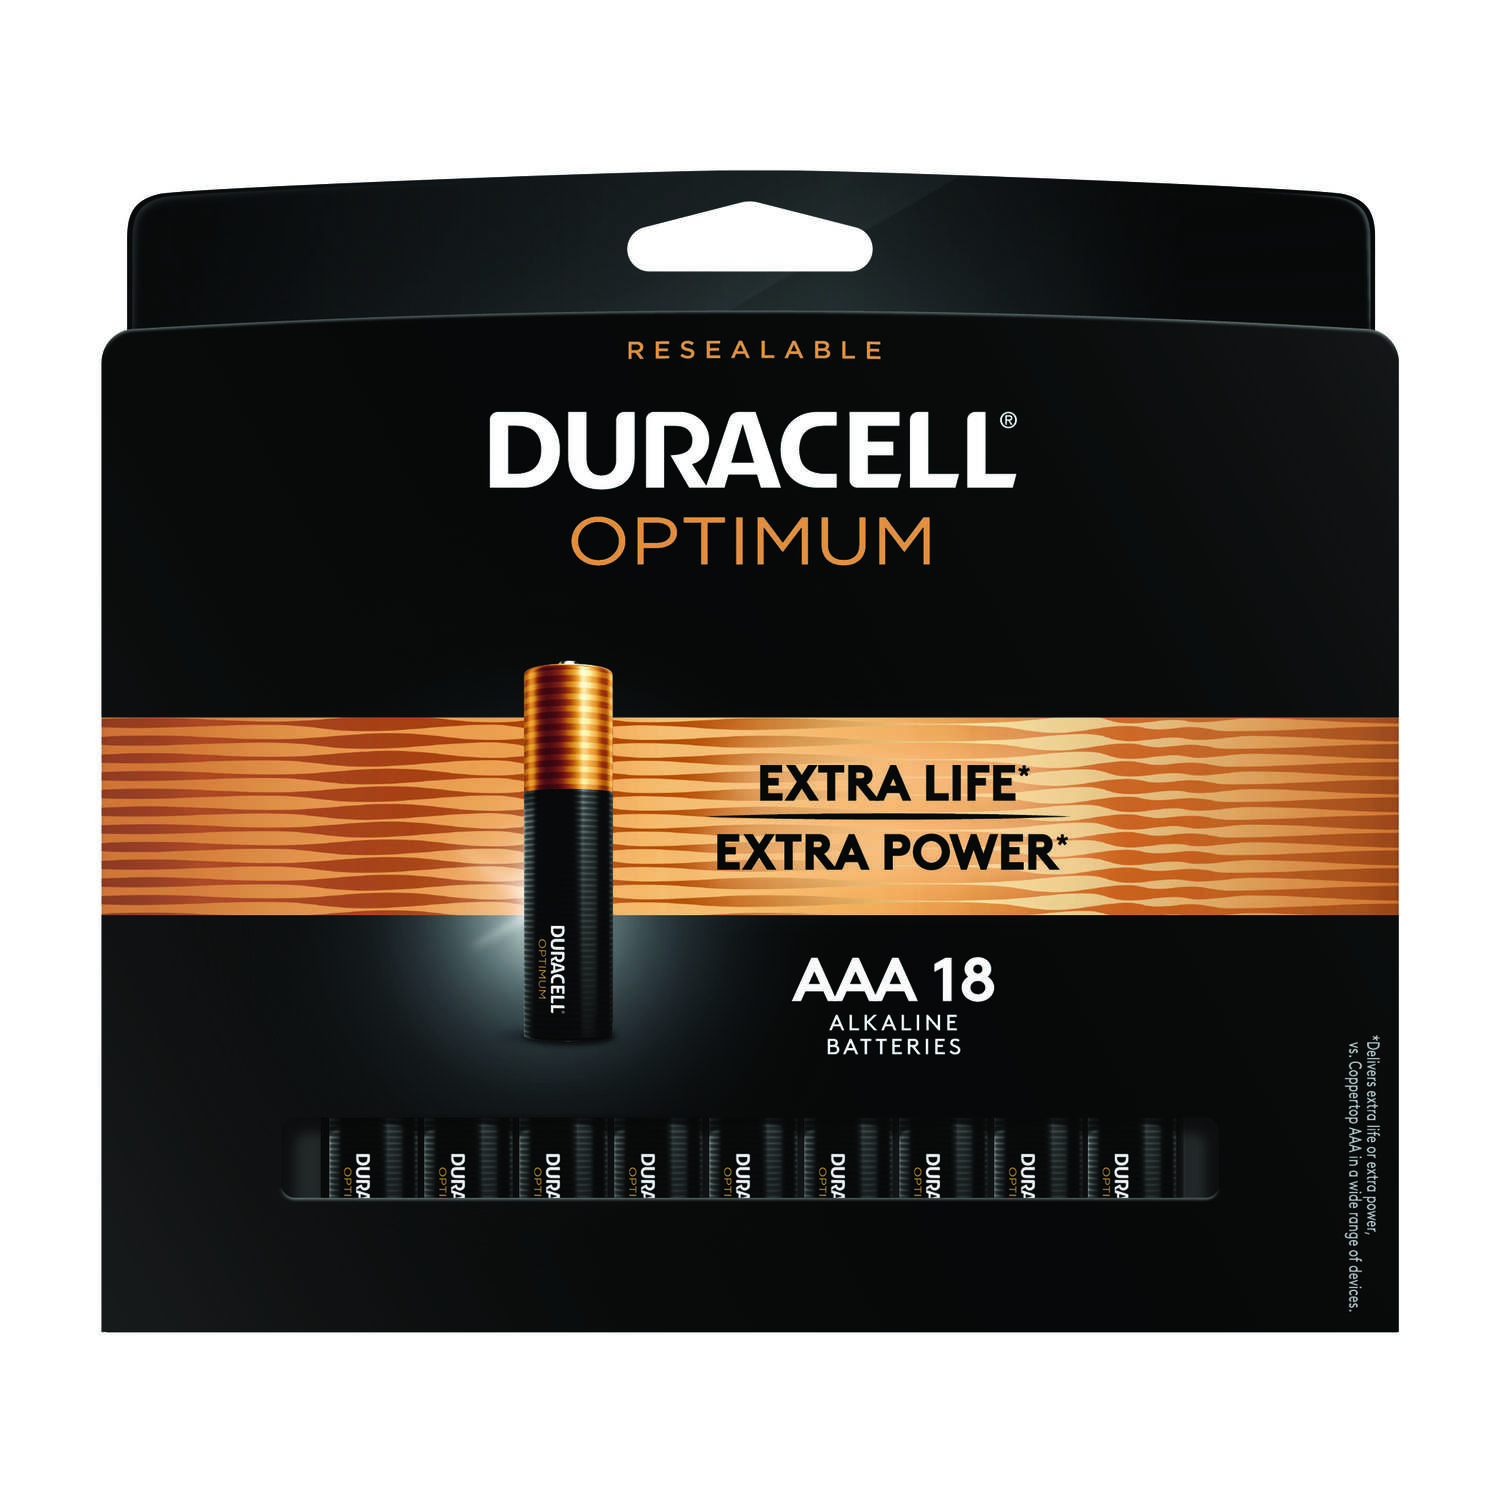 Duracell  Optimum  AAA  Alkaline  Batteries  18 pk Carded